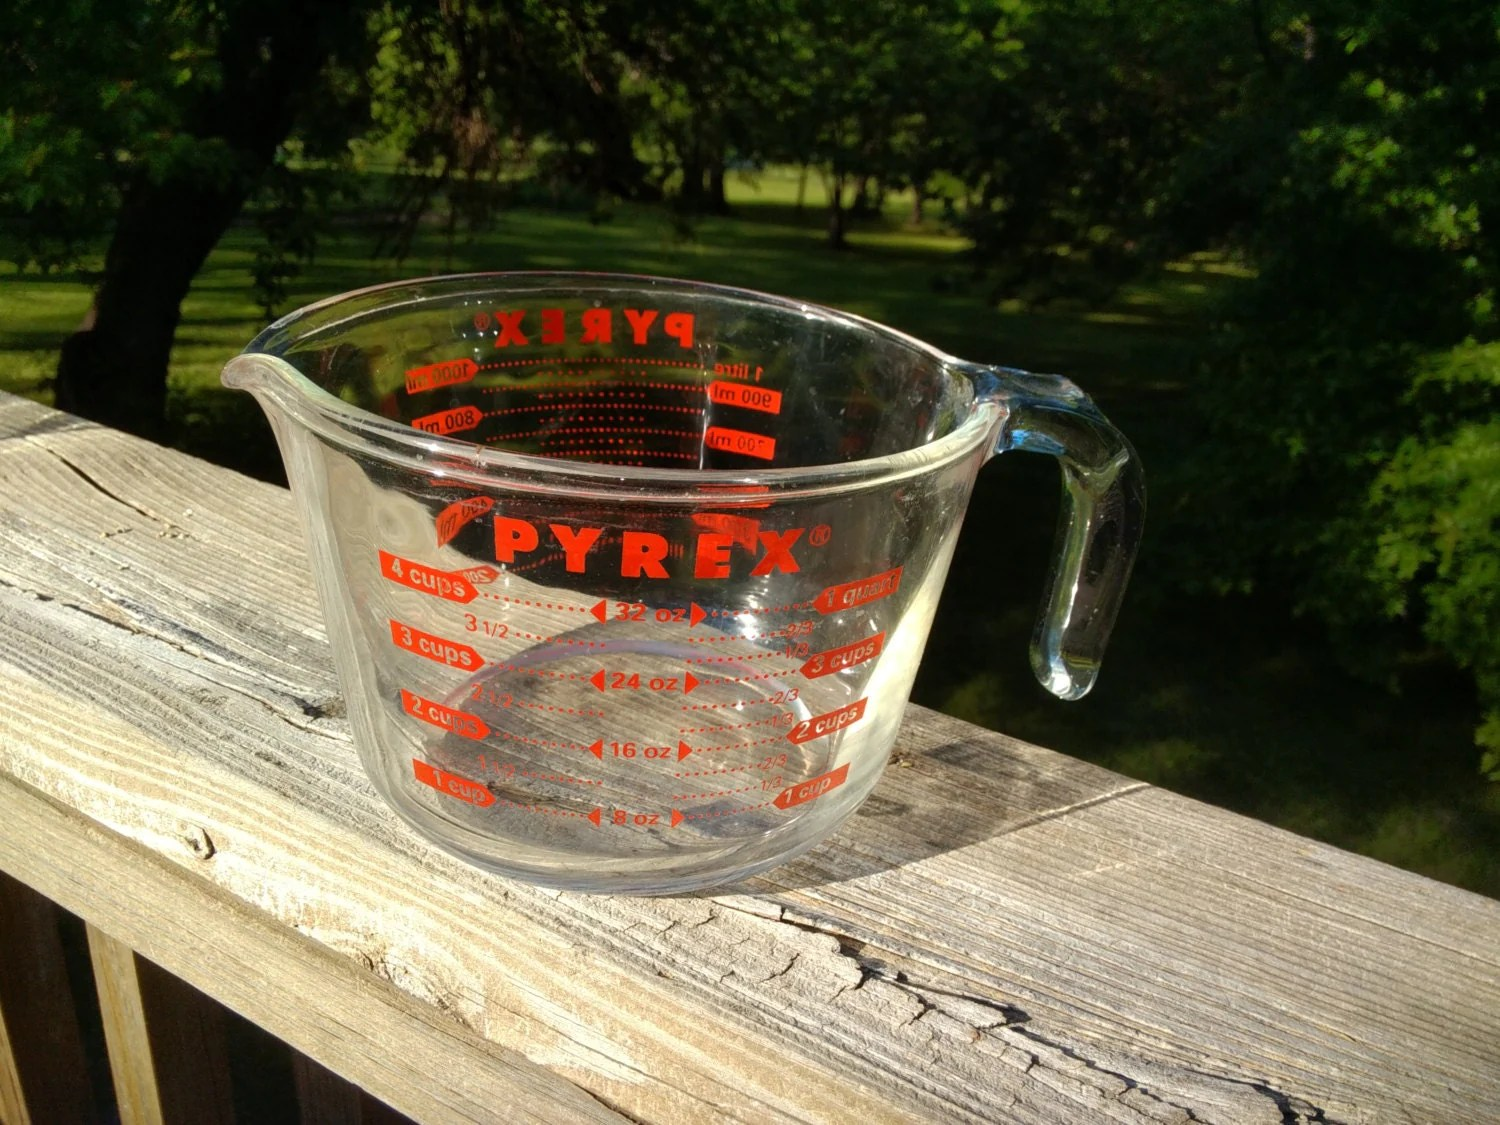 Vintage Pyrex 2 Quart 8 Cup 2 Liter Glass Measuring Cup Red